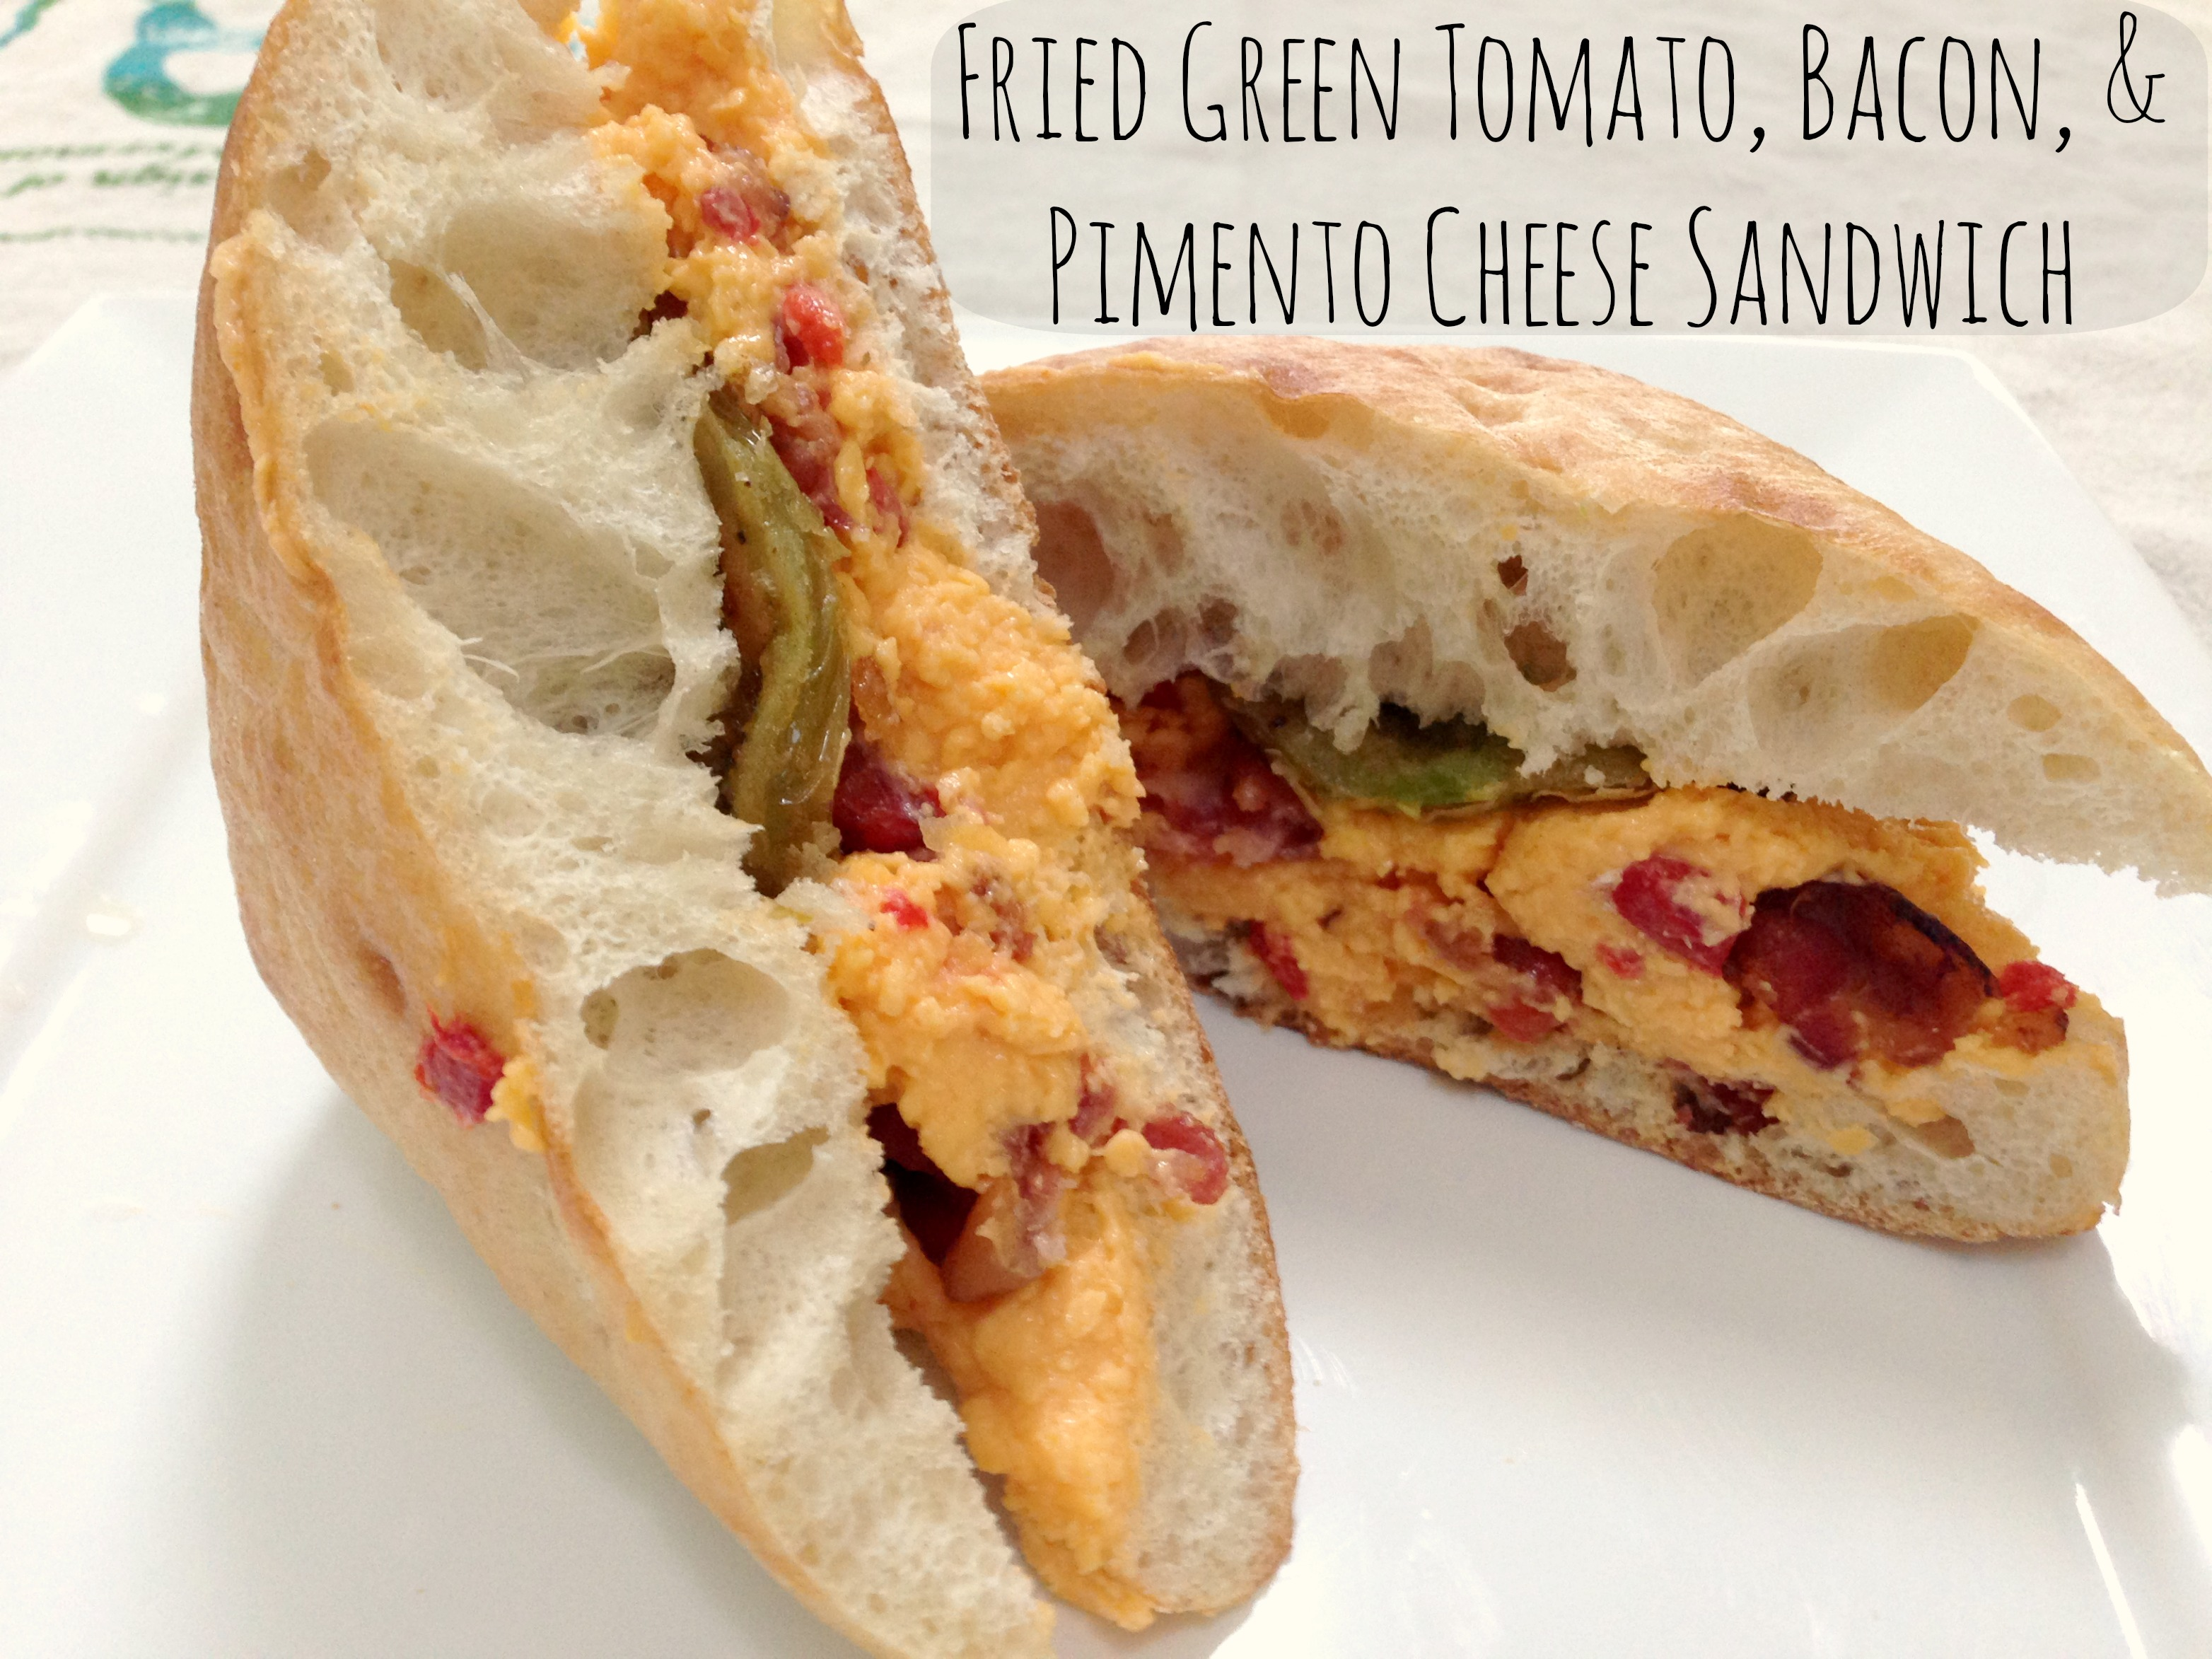 jam pimento cheese pimento cheese pimento cheese fried green tomato ...